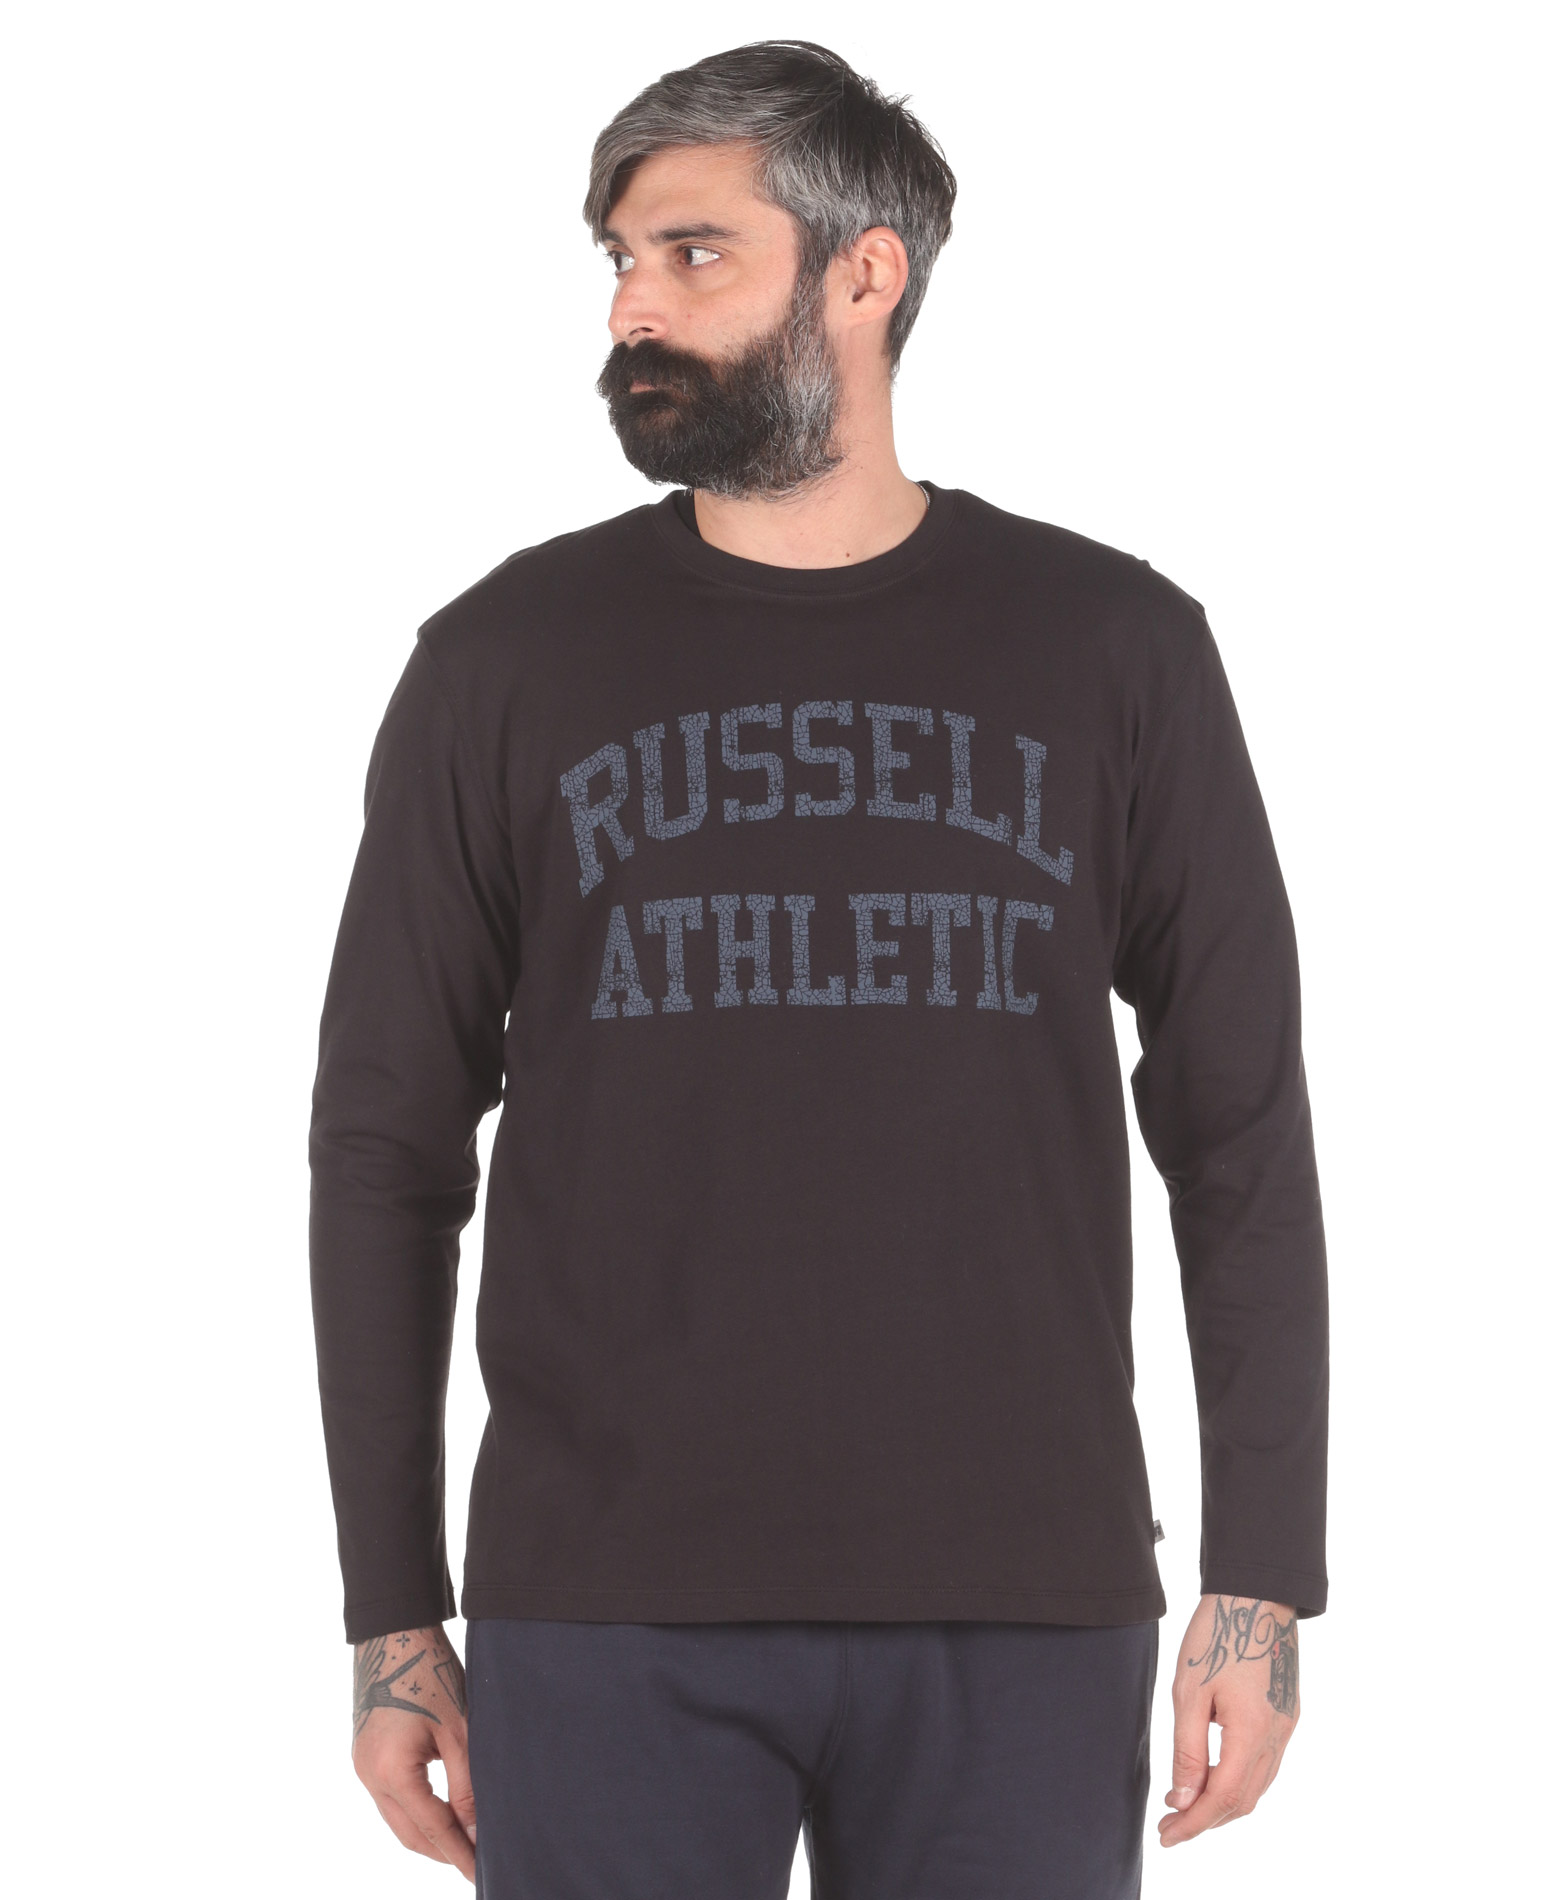 Russell Athletic L/S CREWNECK TEE SHIRT A0-086-2-099 Μαύρο